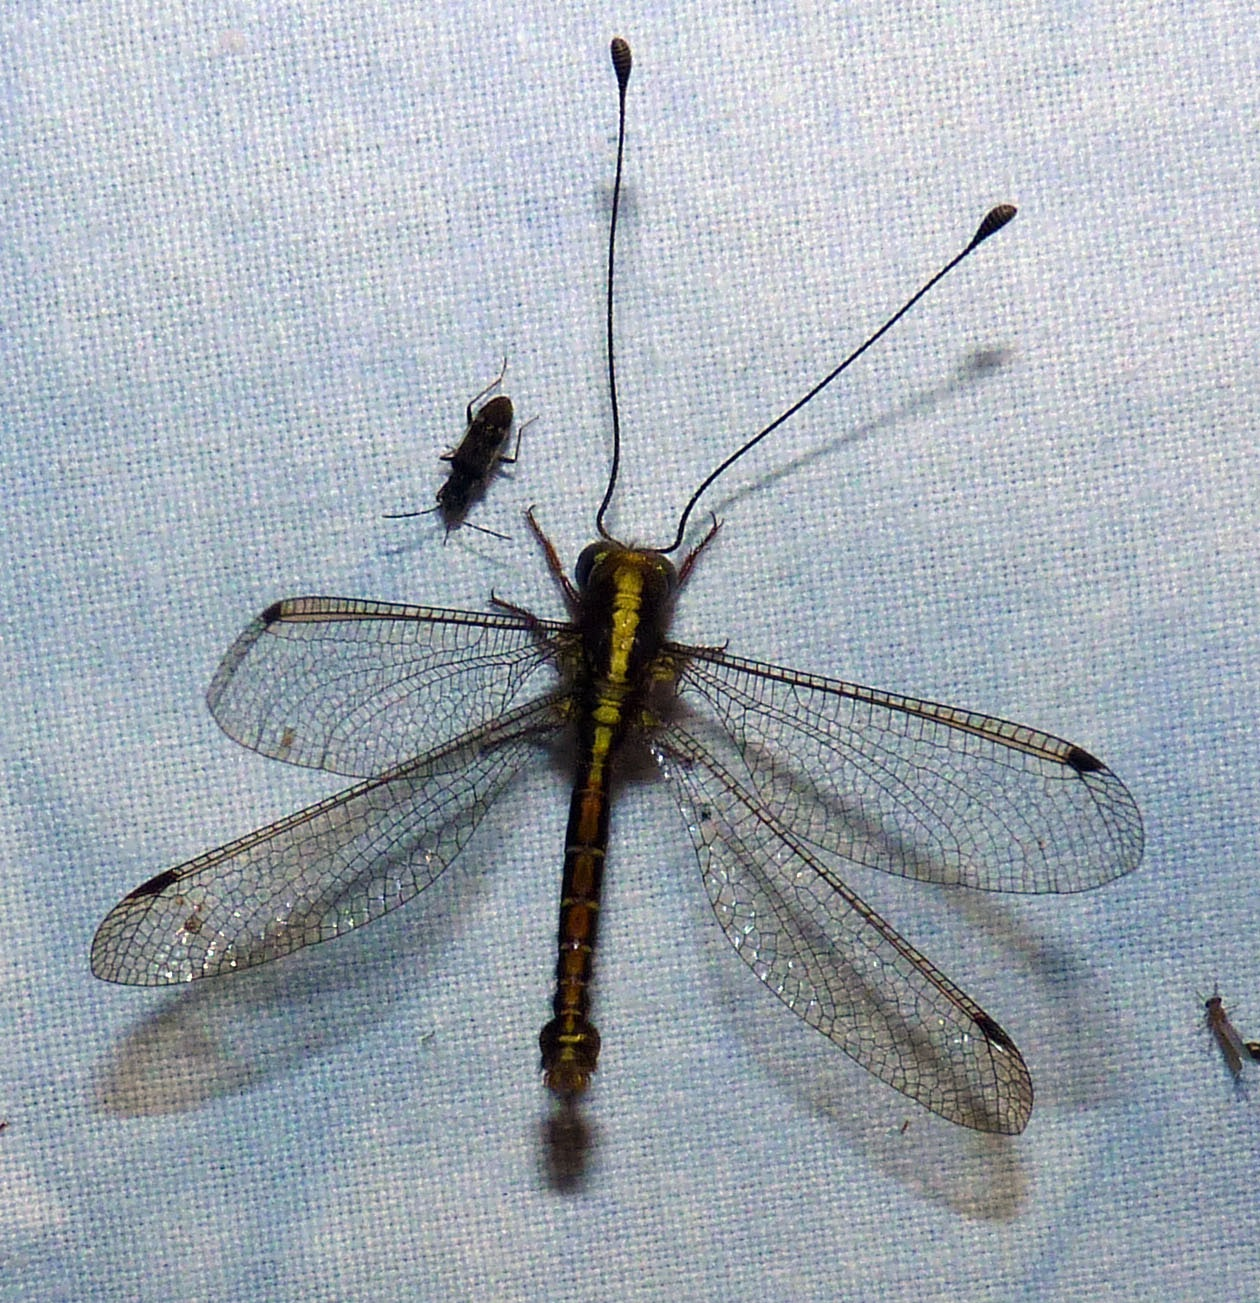 The owlfly is often mistaken for a dragonfly. (Photo credit: Geetha Iyer)